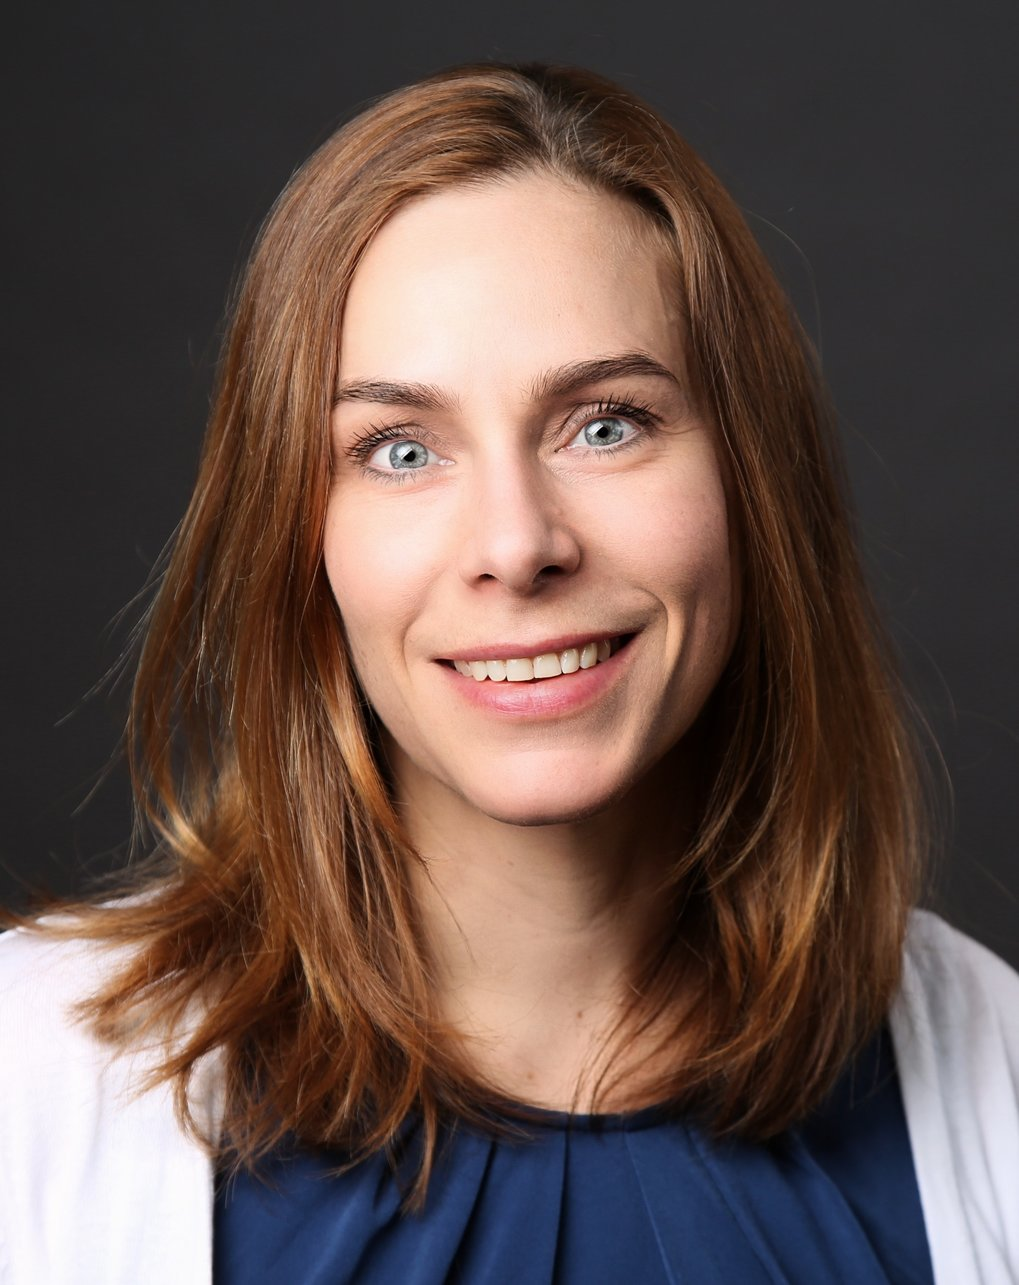 Eva Benckiser received the Walter-Schottky-Prize of the German Physical Society for her outstanding contributions to research on complex materials with correlated electrons. By developing x-ray spectroscopic methods she obtained novel insight into the electronic structure of metal-oxide interfaces and created a promising basis for targeted manipulation of their magnetic and transport properties. http://www.dpg-physik.de/preise/preistraeger2019.html#Walter-Schottky-Preis